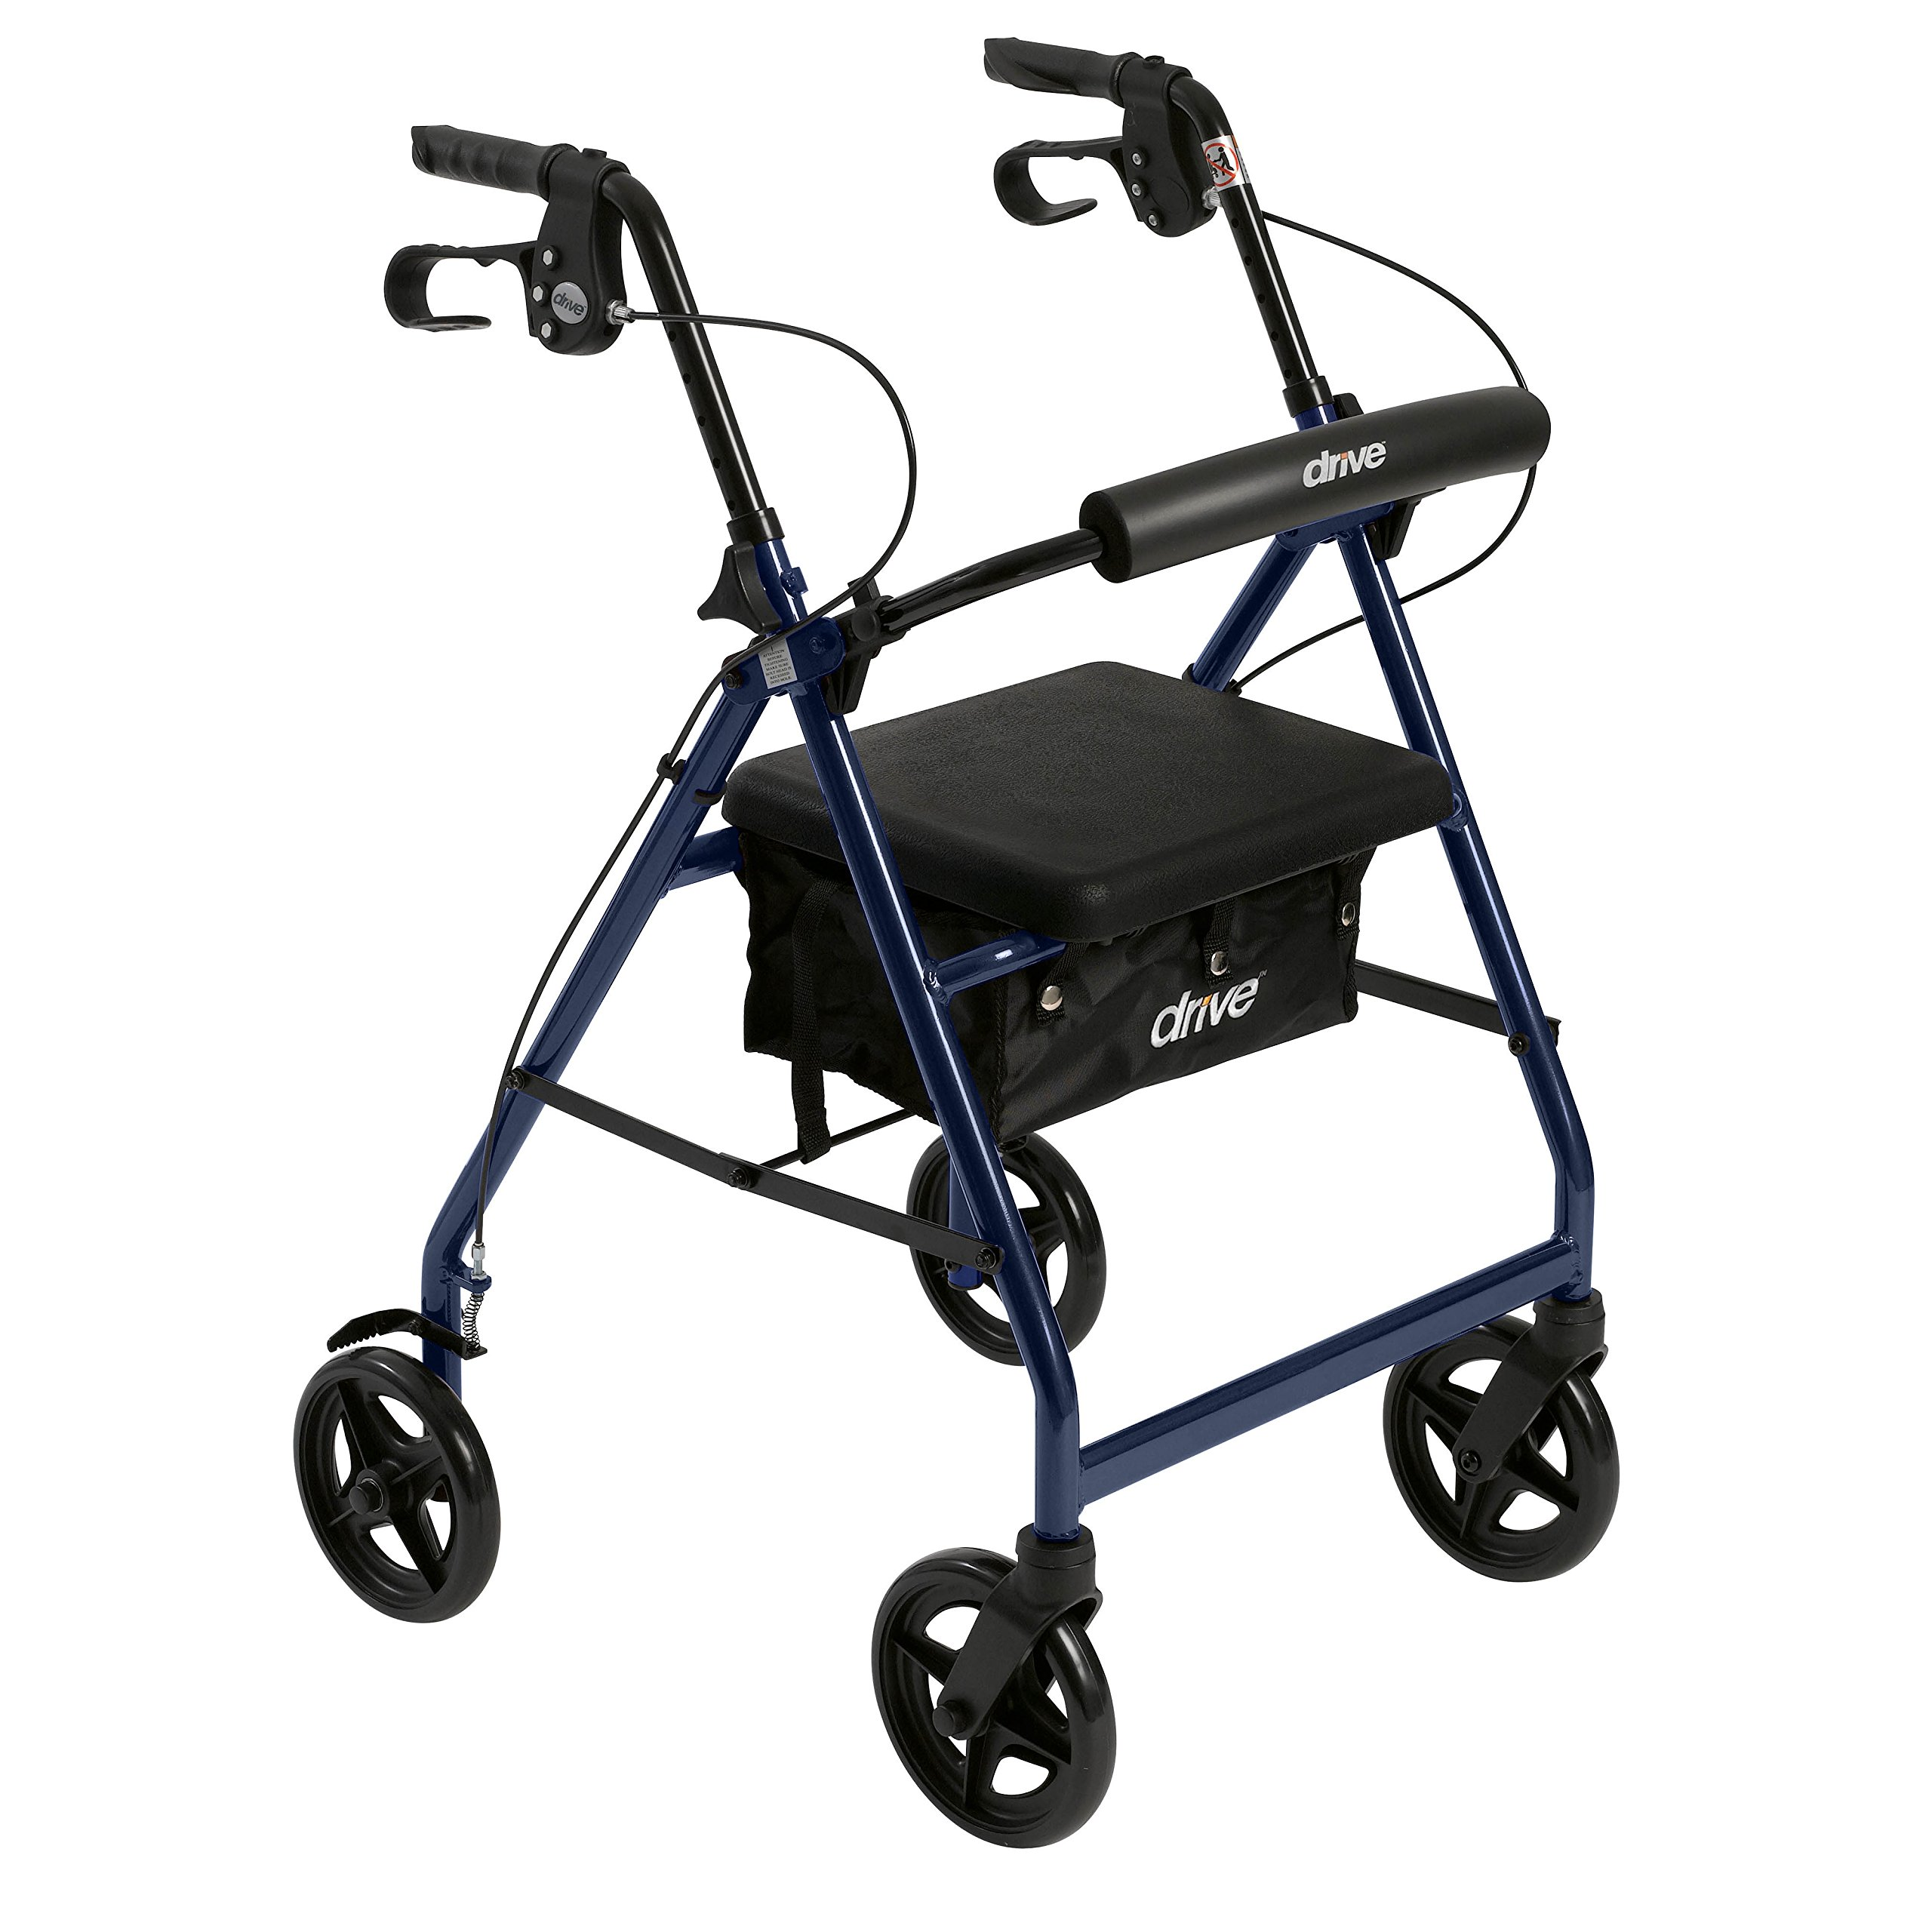 Drive Medical Rollator Walker with Fold Up and Removable Back Support and Padded Seat, Blue by Drive Medical